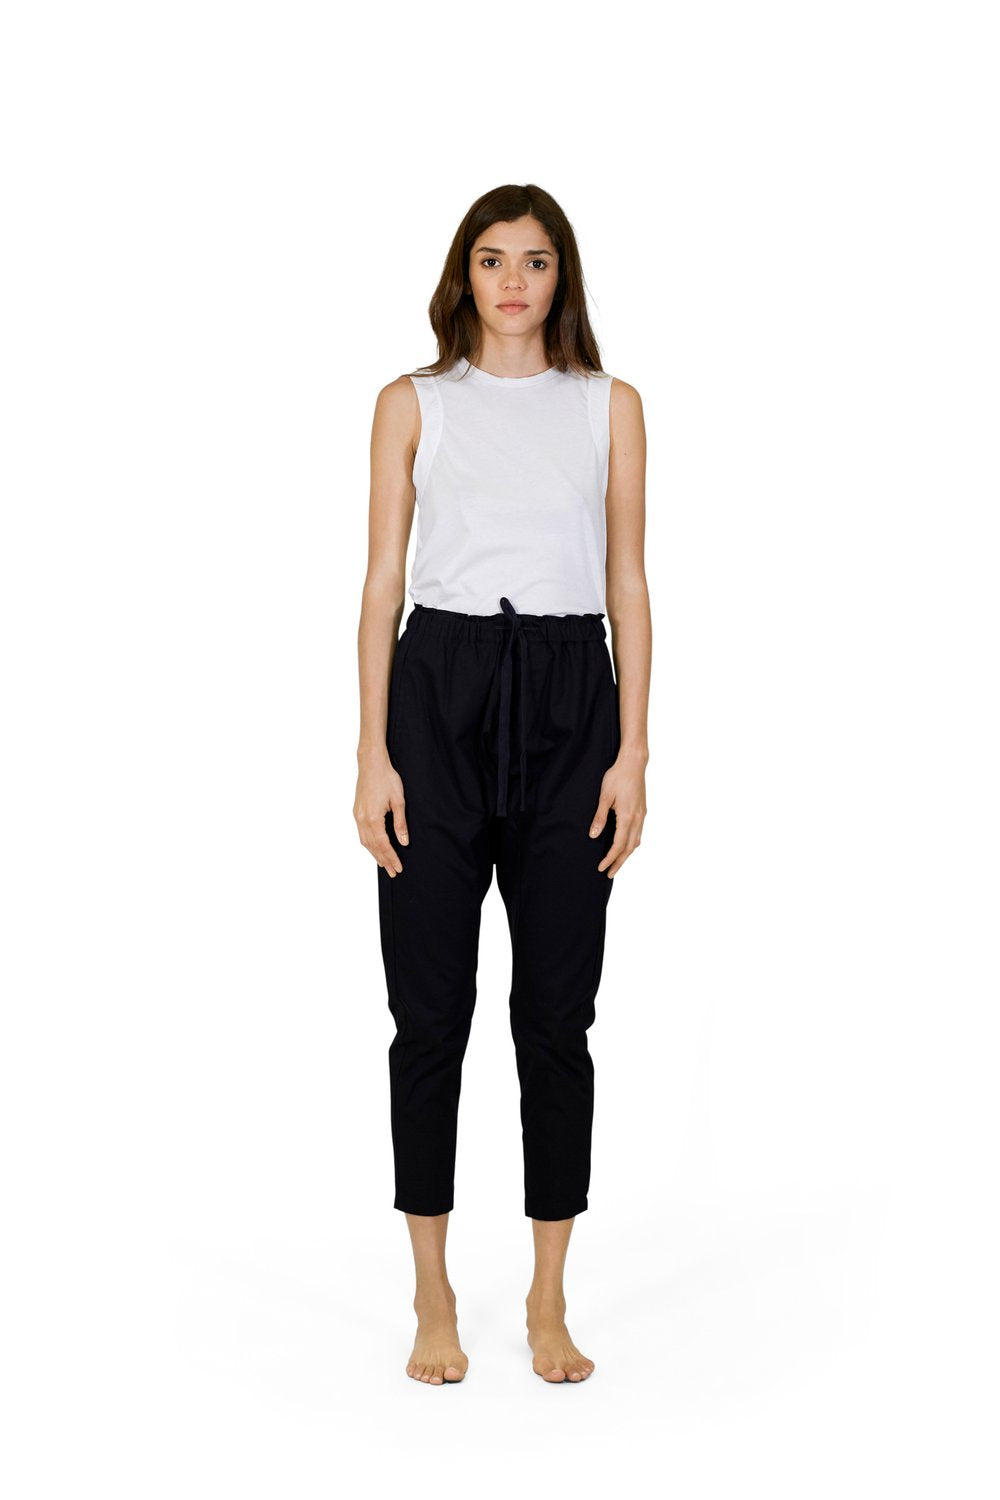 Buy Sanbasics Drop Pant | Buy Sanbasics Fashion Online